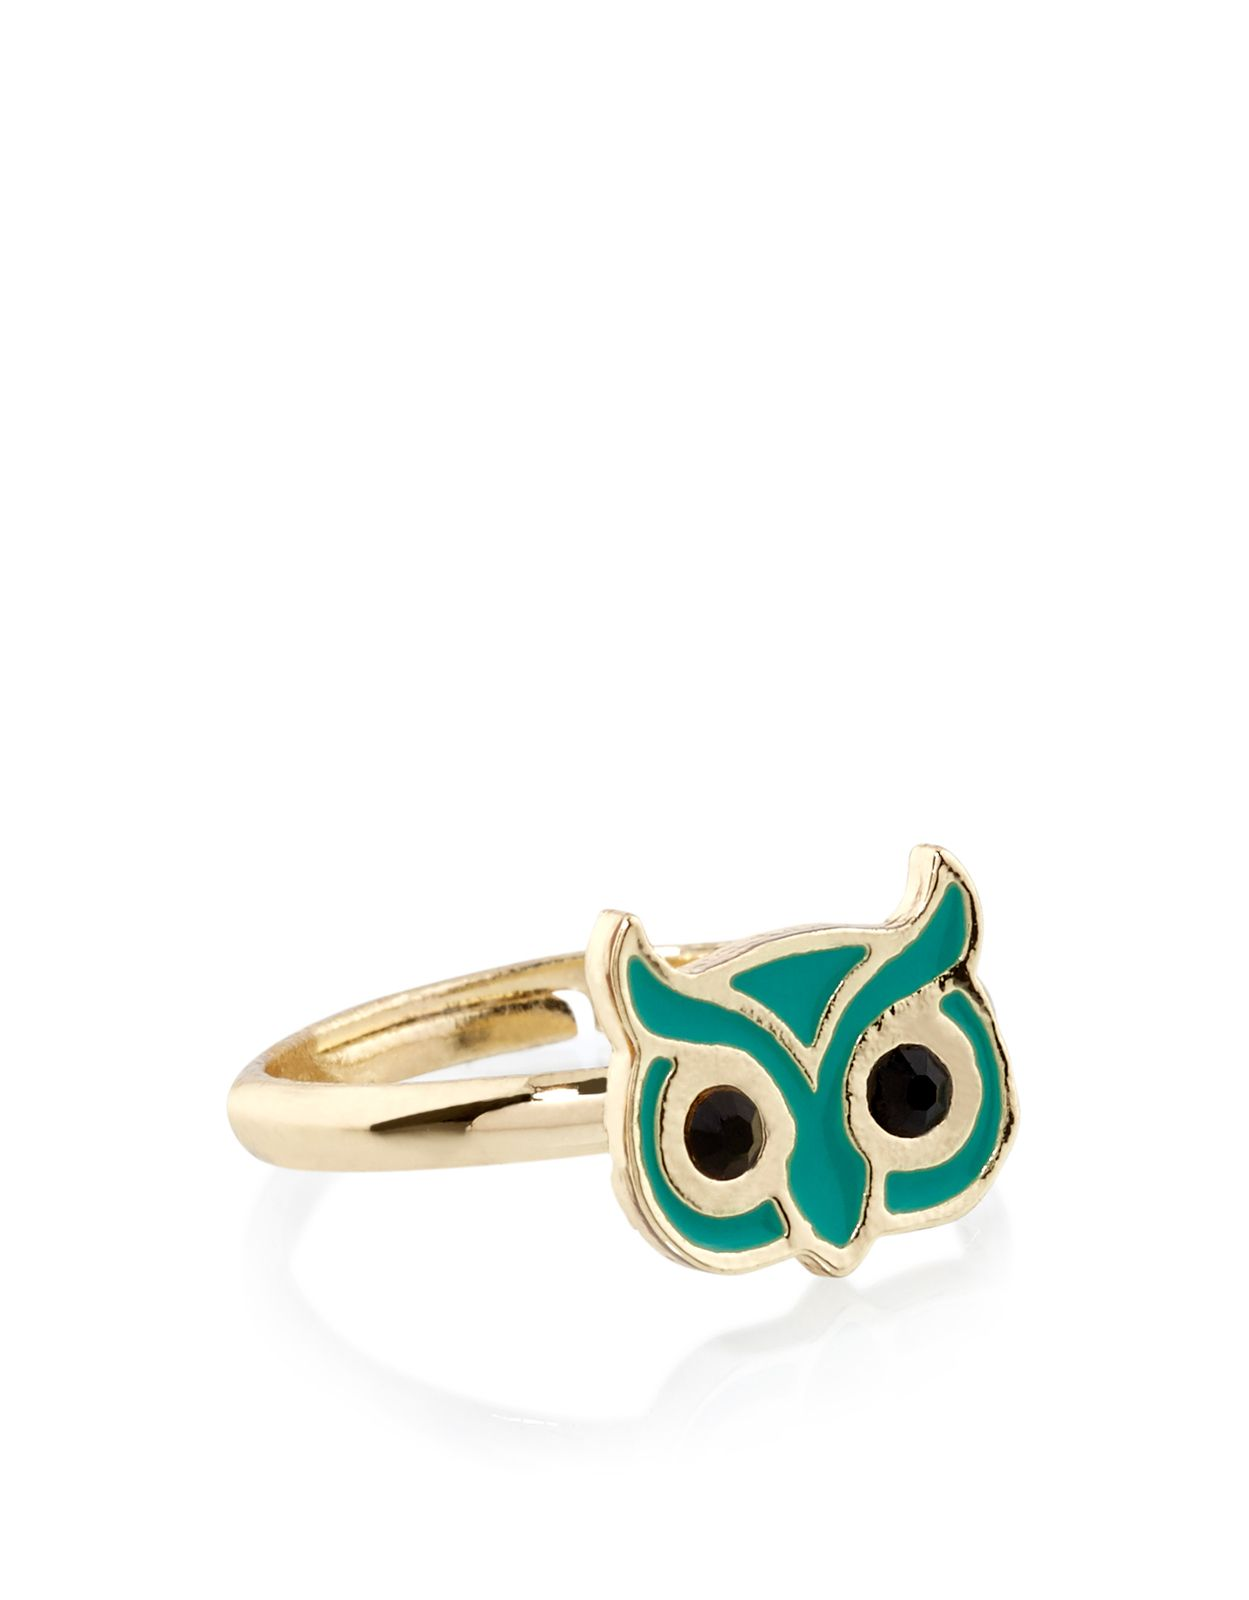 Hoot hoot This gold tone metal ring is designed with an enamel owl